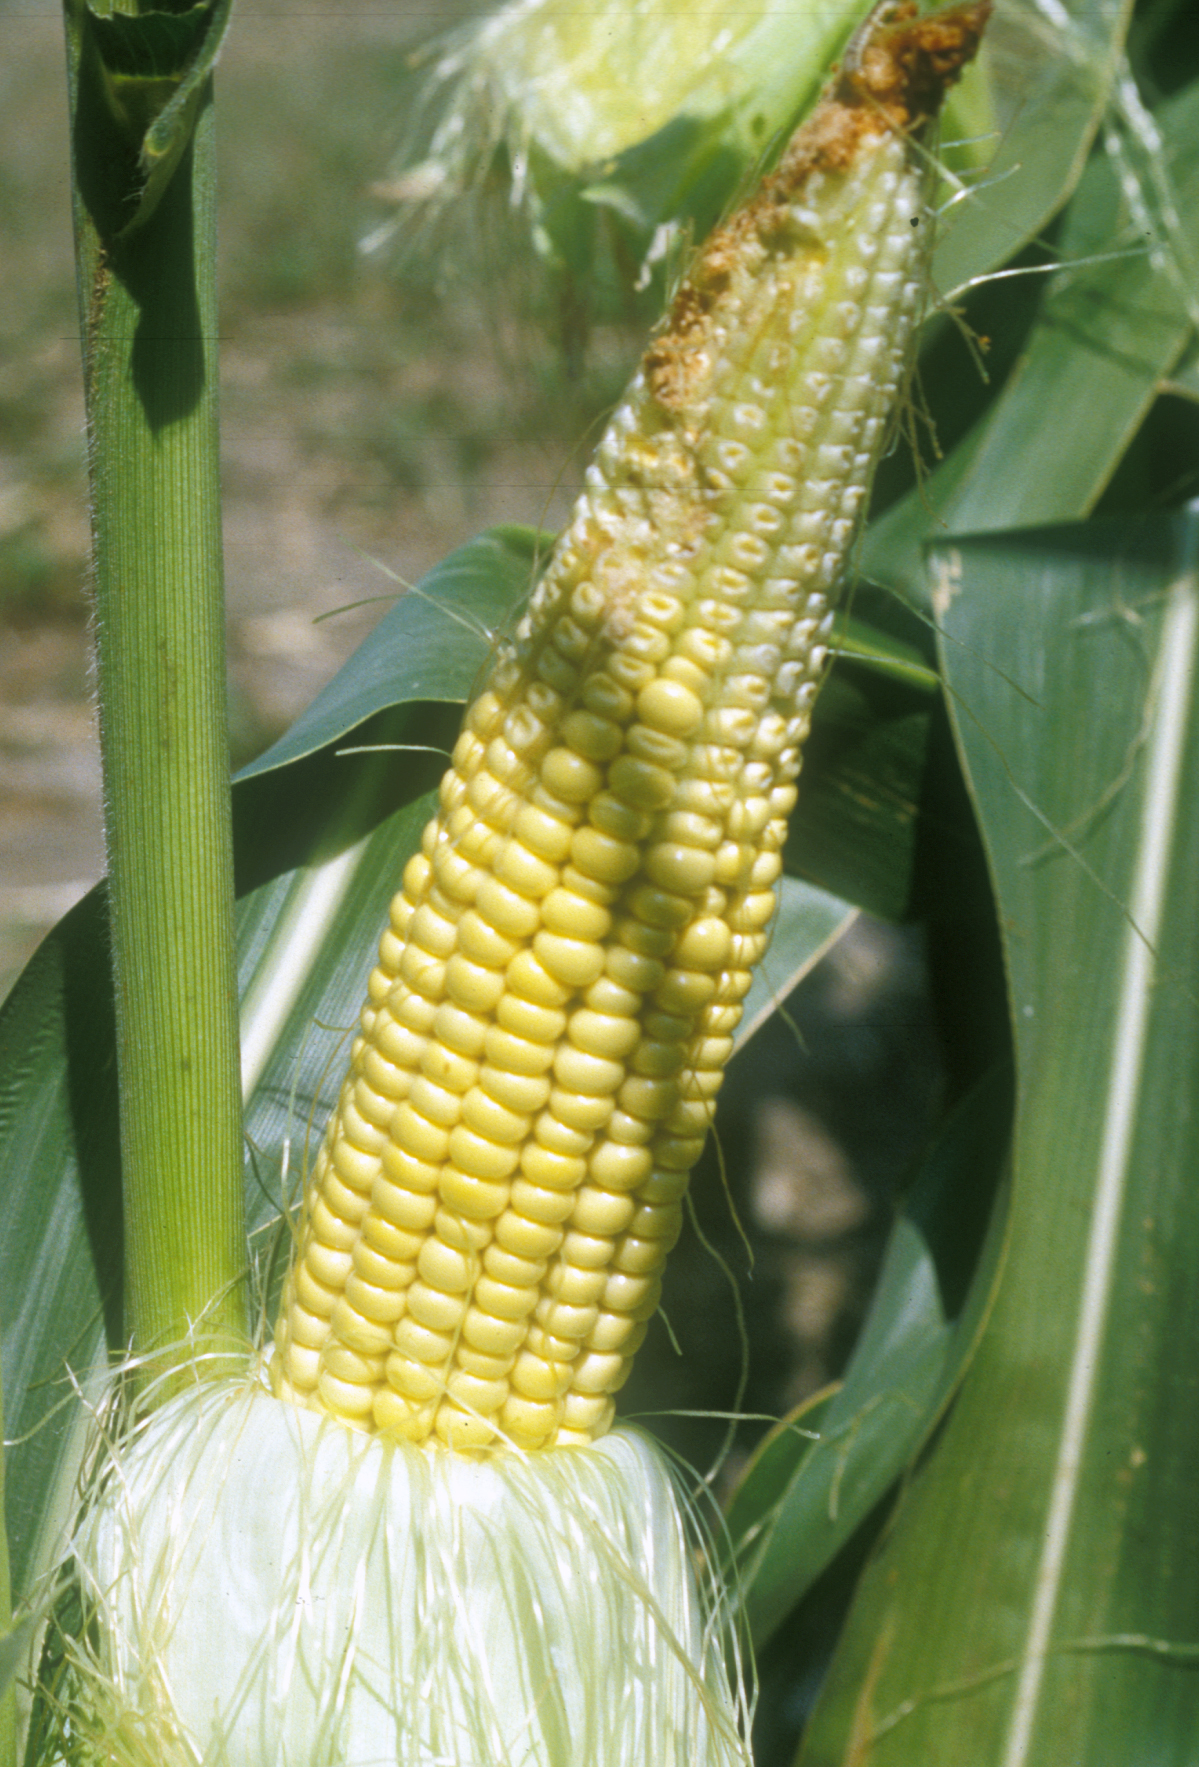 Open Figure 4: Aborted kernels. Some tip kernels never fertilized. Others in the top half of the ear stopped growing. Arrested kernels look different from unfertilized ovules in size and color.